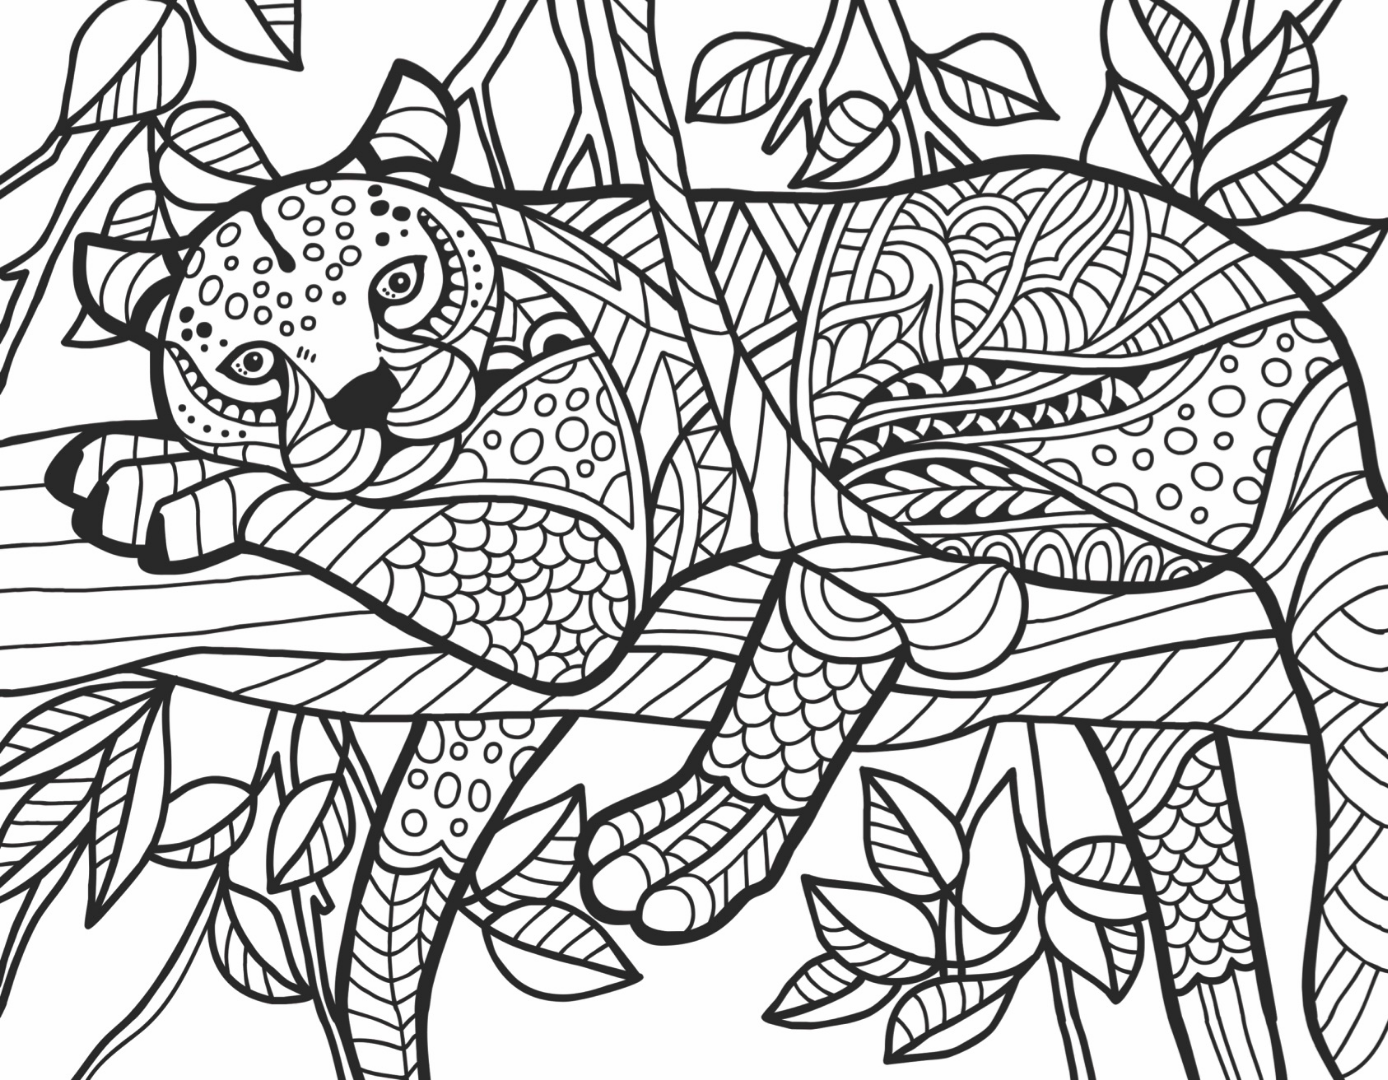 coloring pictures of cheetahs coloring pictures of cheetahs coloring of cheetahs pictures